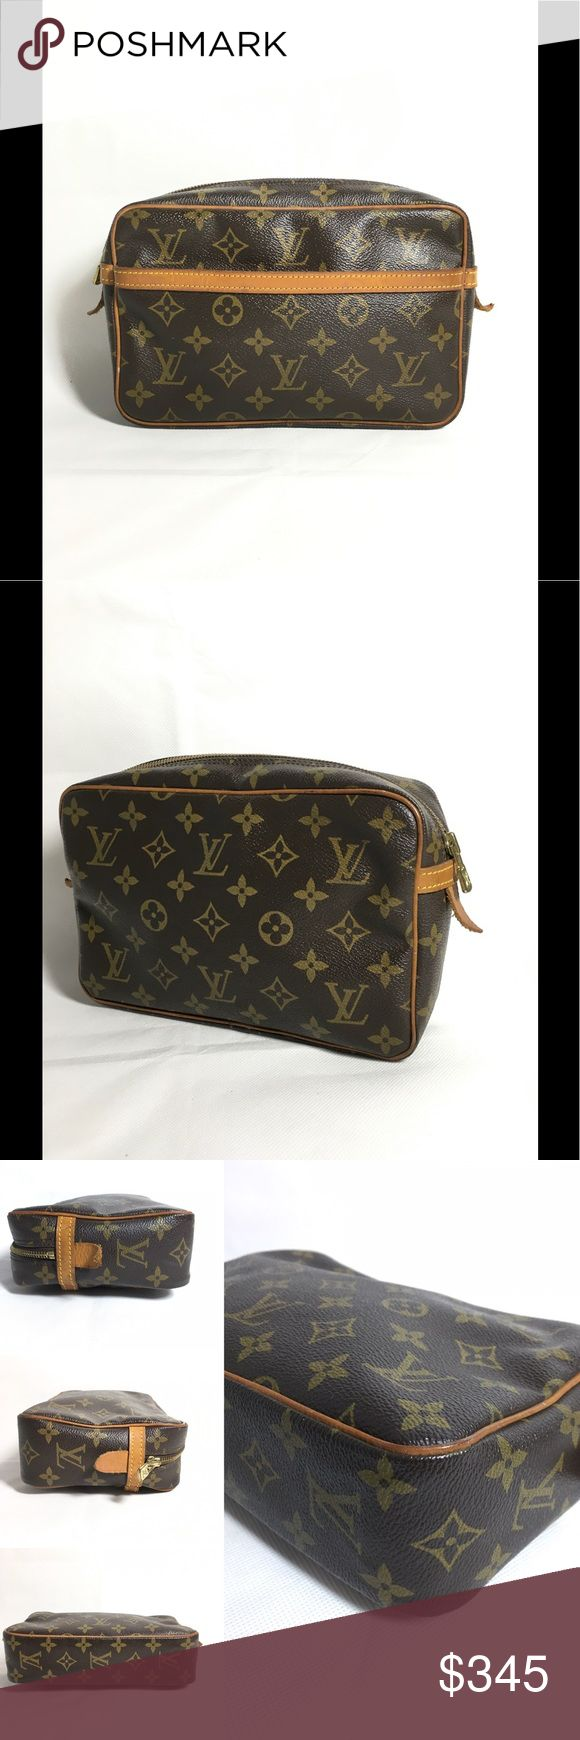 Authentic Louis Vuitton Cosmetic Bag No lowballing, no trade  LV Malletier  S#FH0920  Material: Monogram canvas, leather  Gently used condition  The exterior is overall well kept. Rubbing and some marks on the piping and corners. Small scratches and rub marks on the leather trims. Interior pocket shows aging of leather, light patina, rubbing and light peeling  Interior has very few light marks in the main compartment but the pocket shows peeling without stickiness and uneven coloring. A…